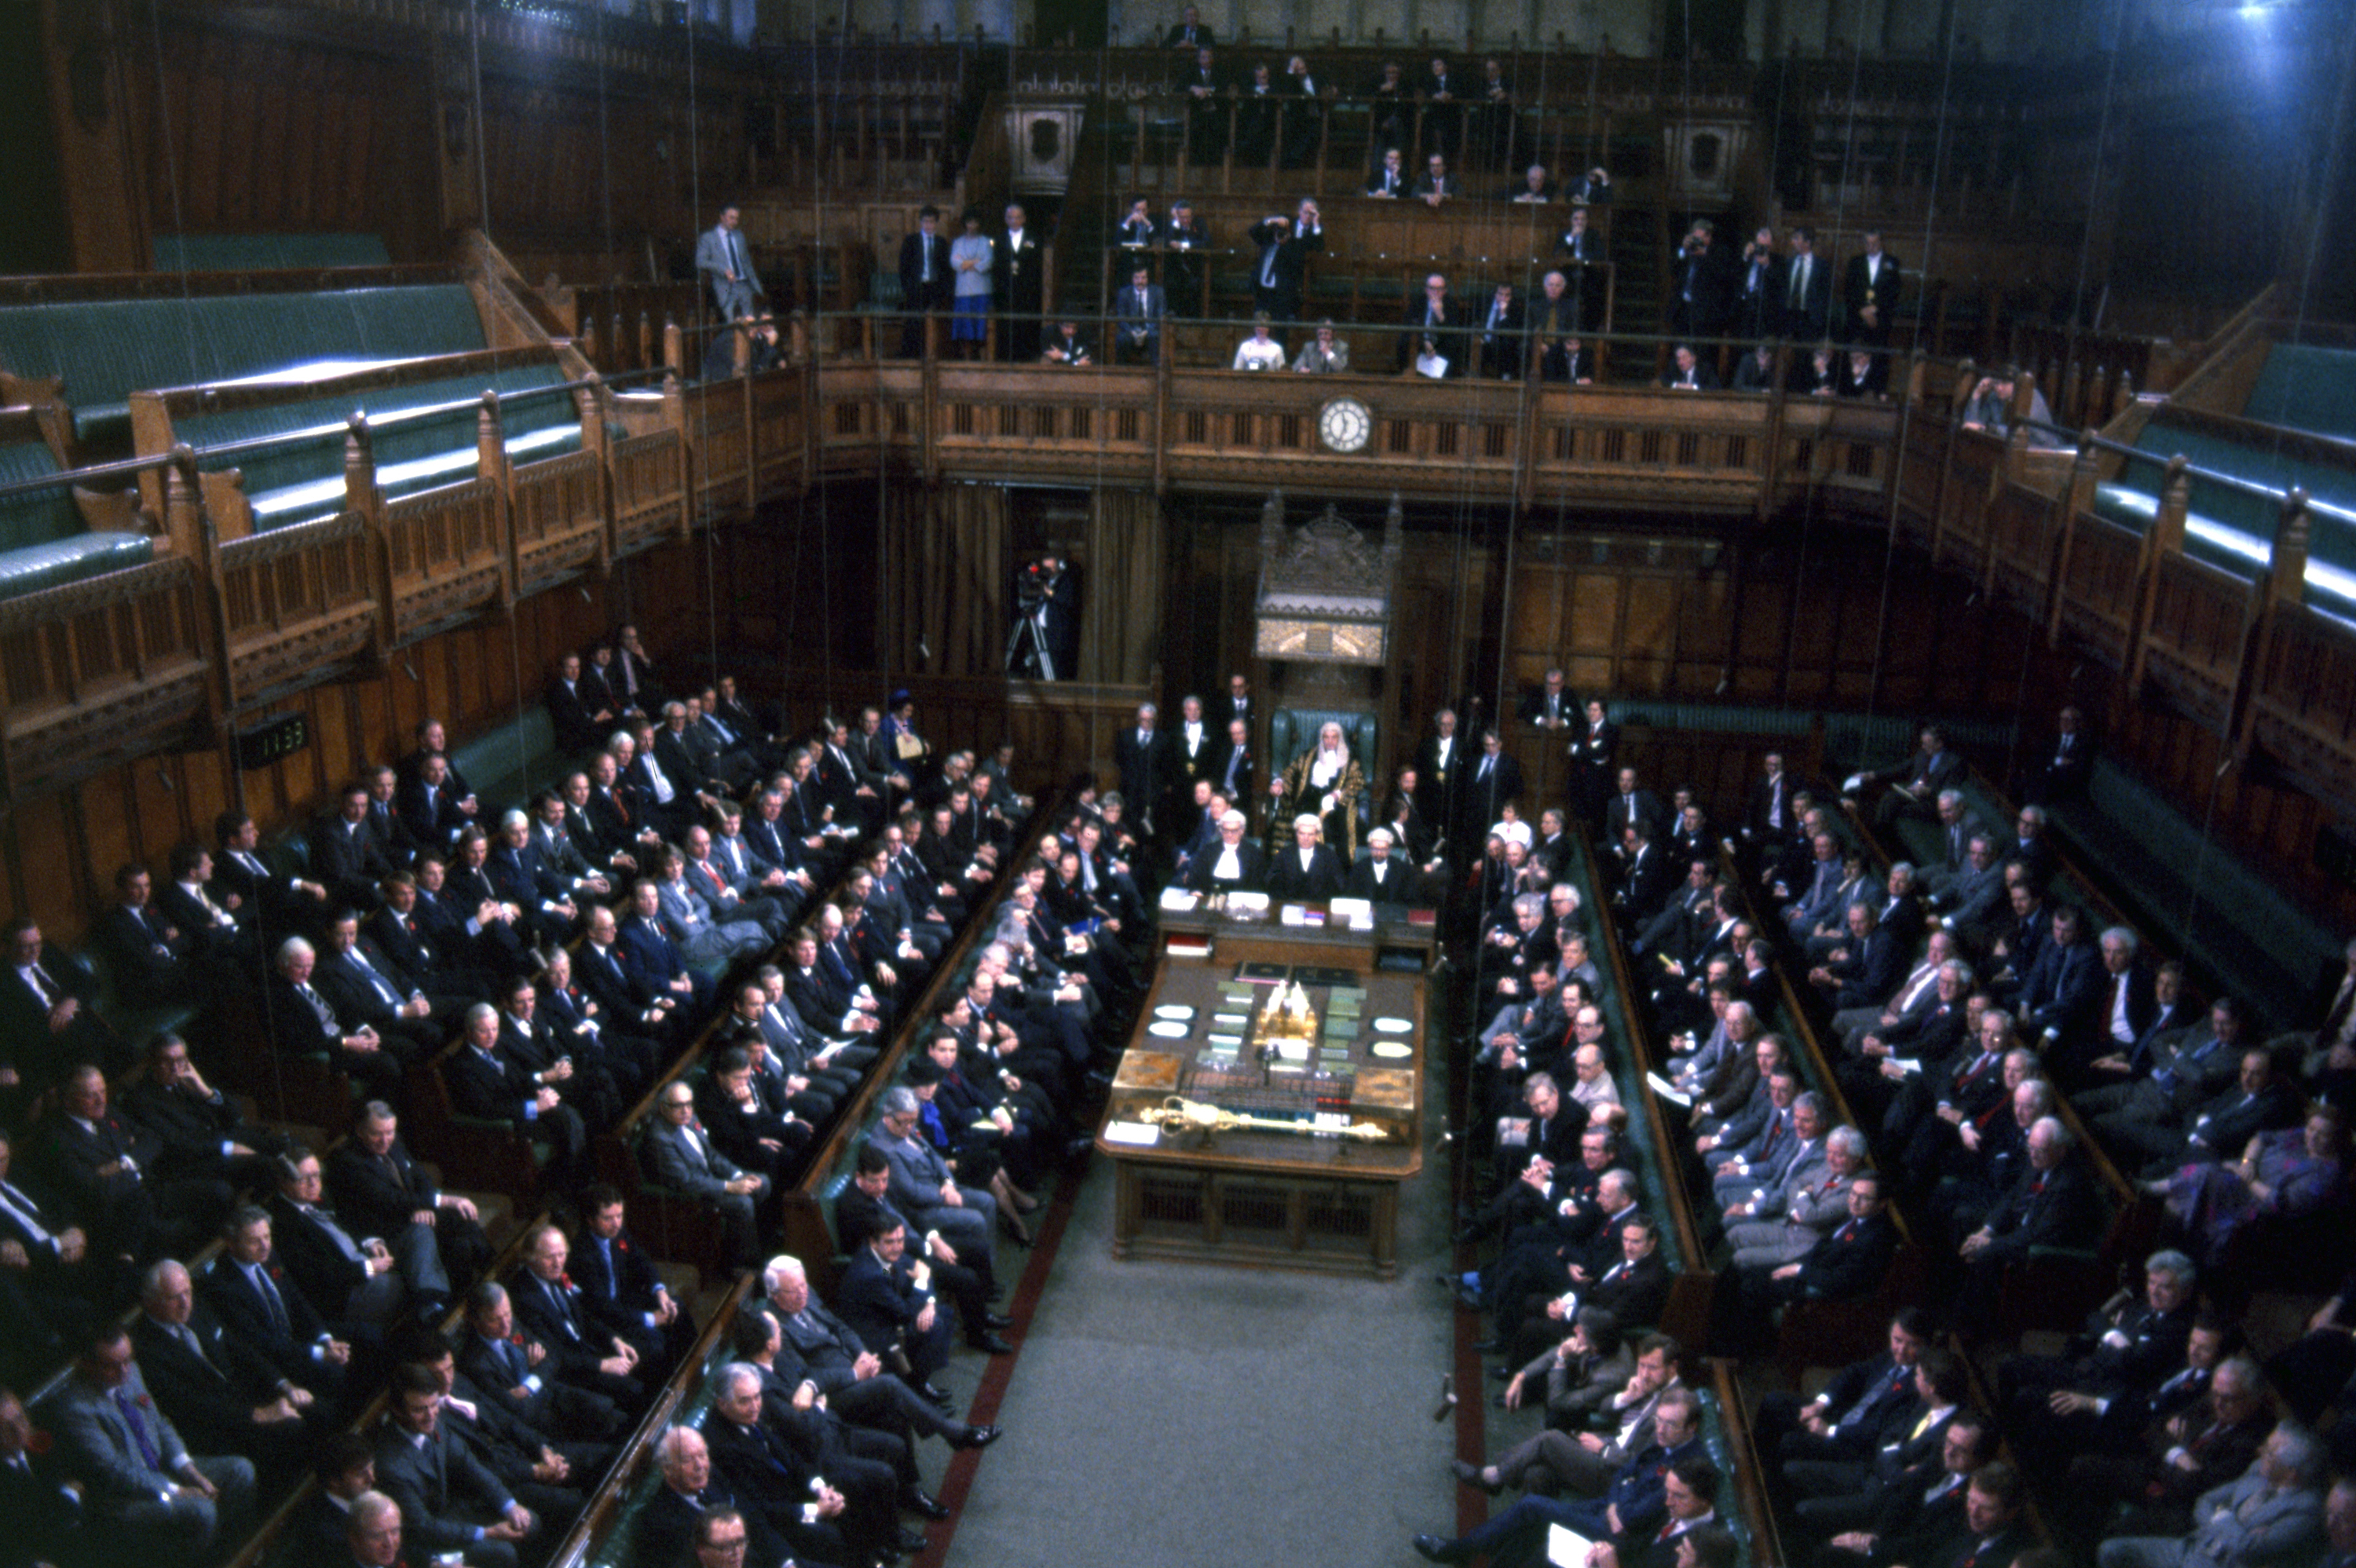 The chamber of the House of Commons in November 1985. The Speaker of the House of Commons is seen seated on throne at rear with the mace on table at center.